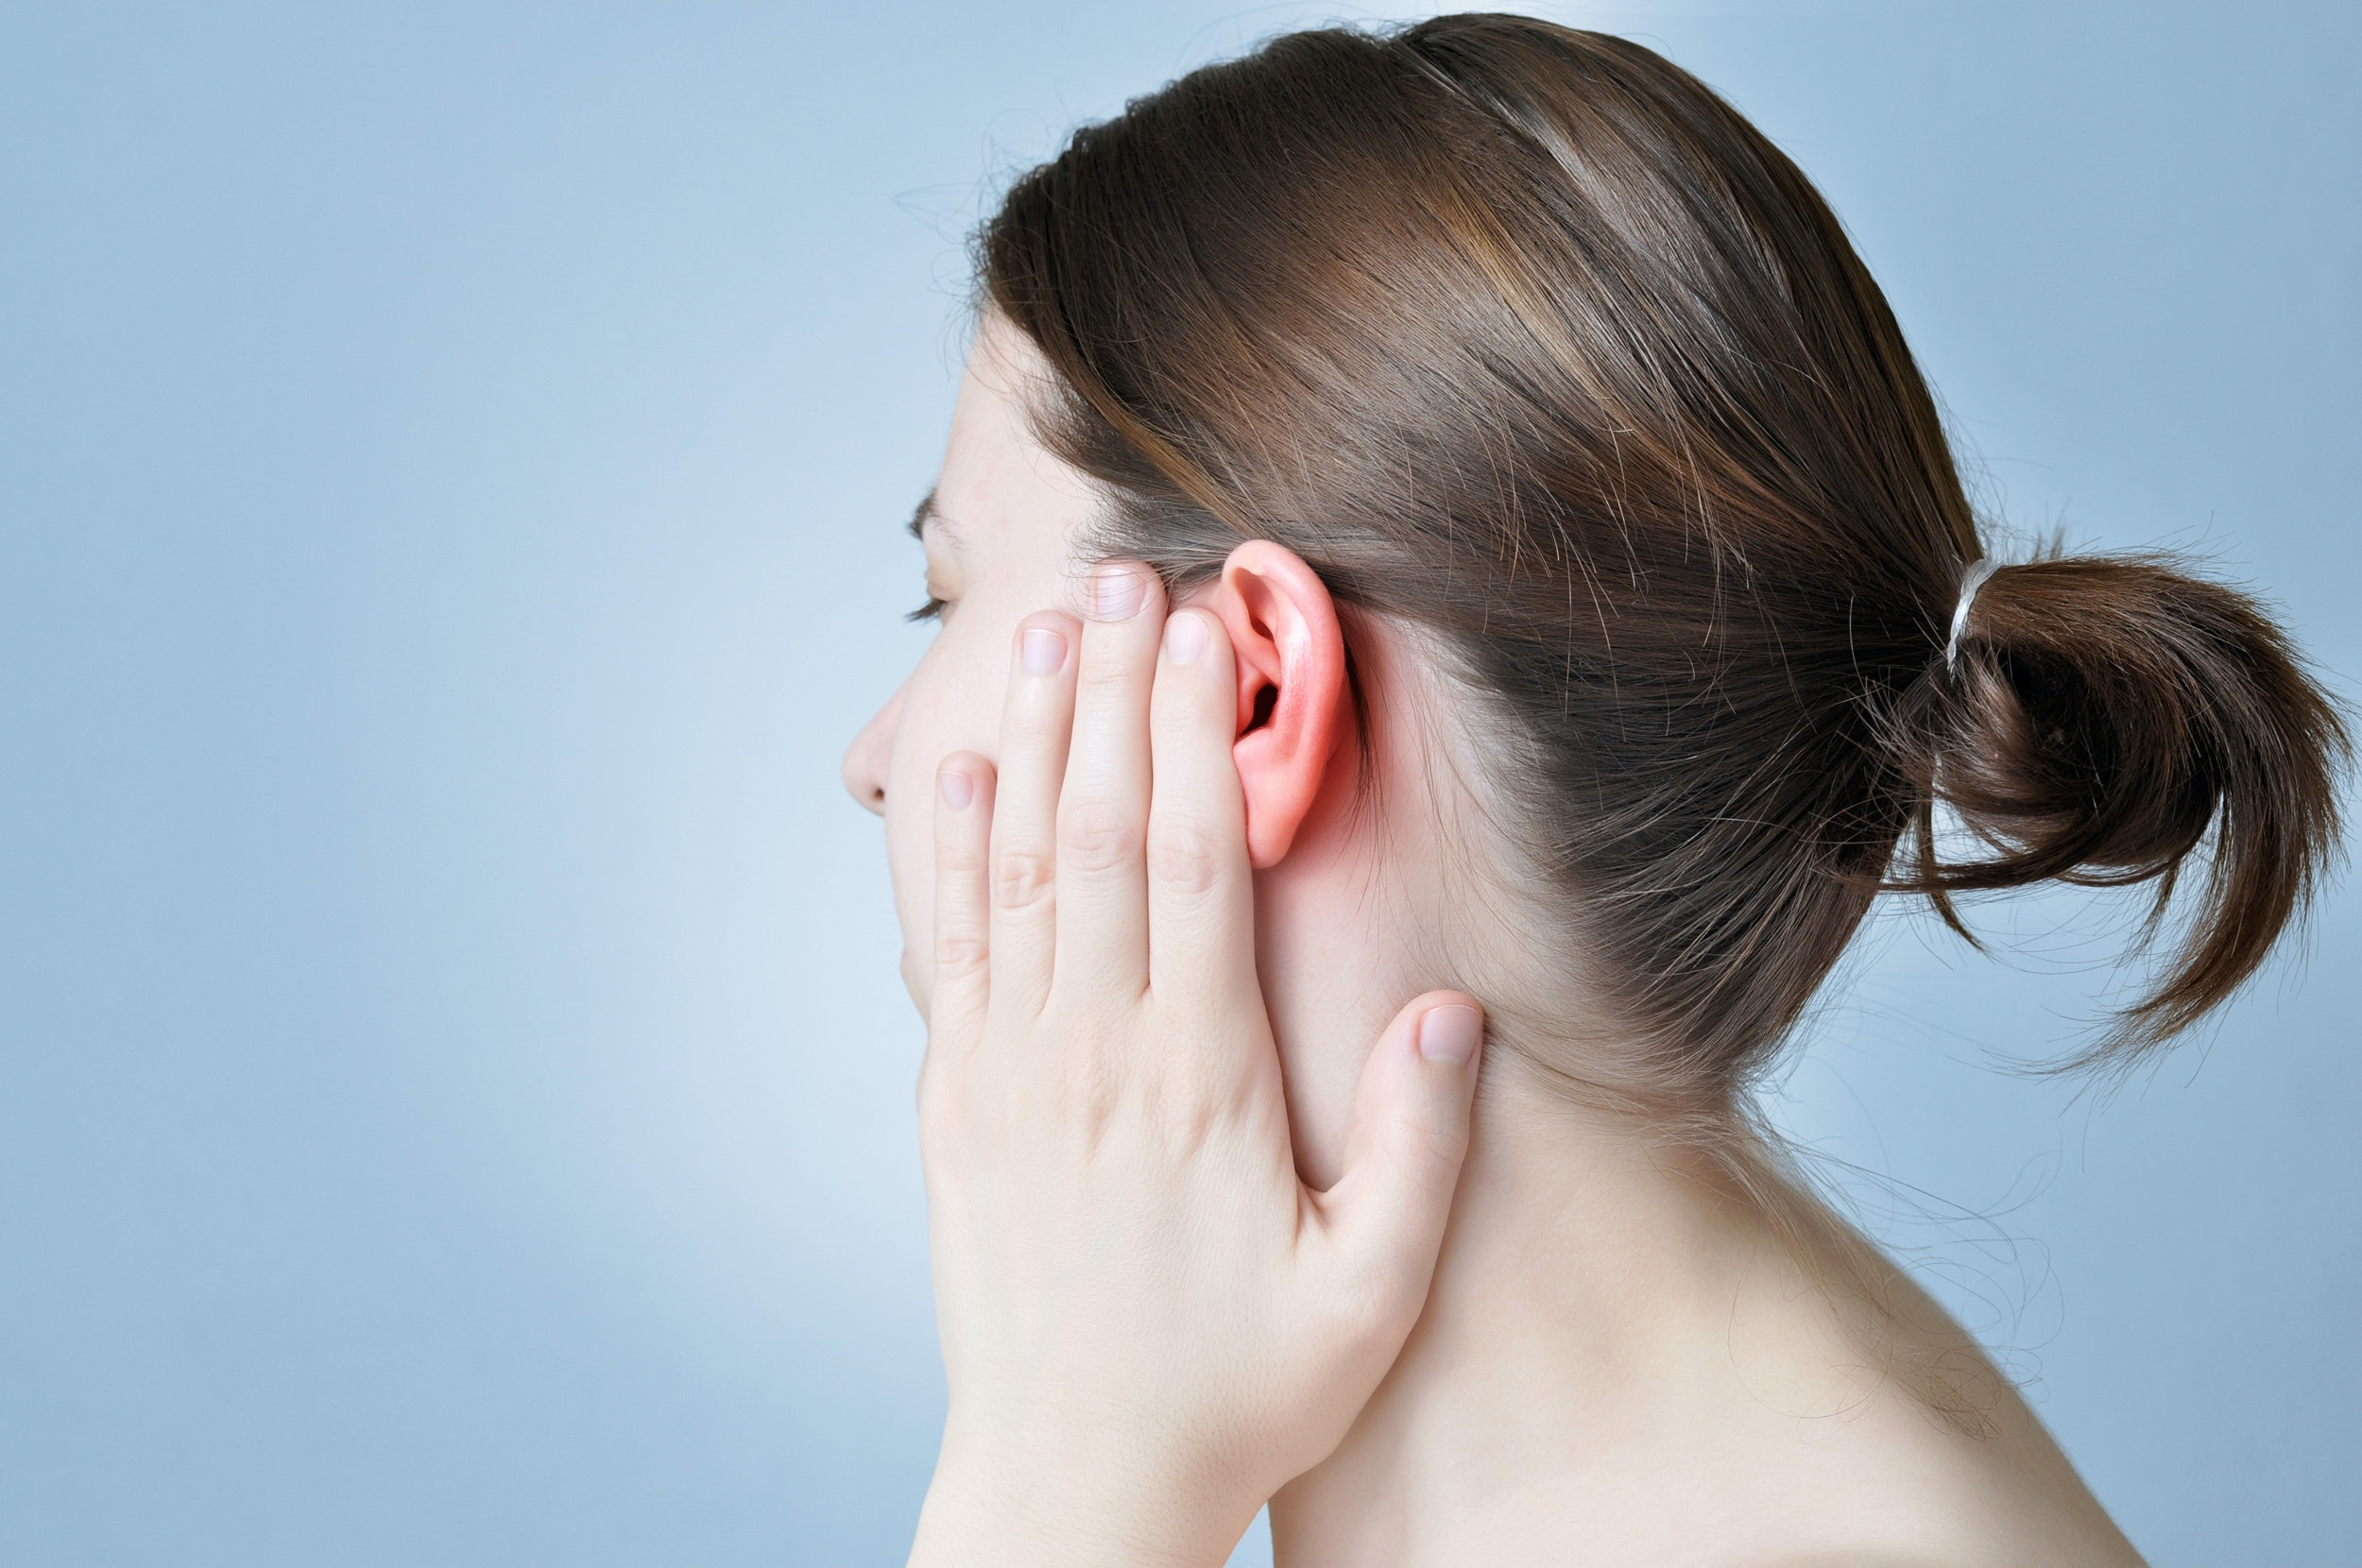 An image depicting a person suffering from pain in one ear canal symptoms